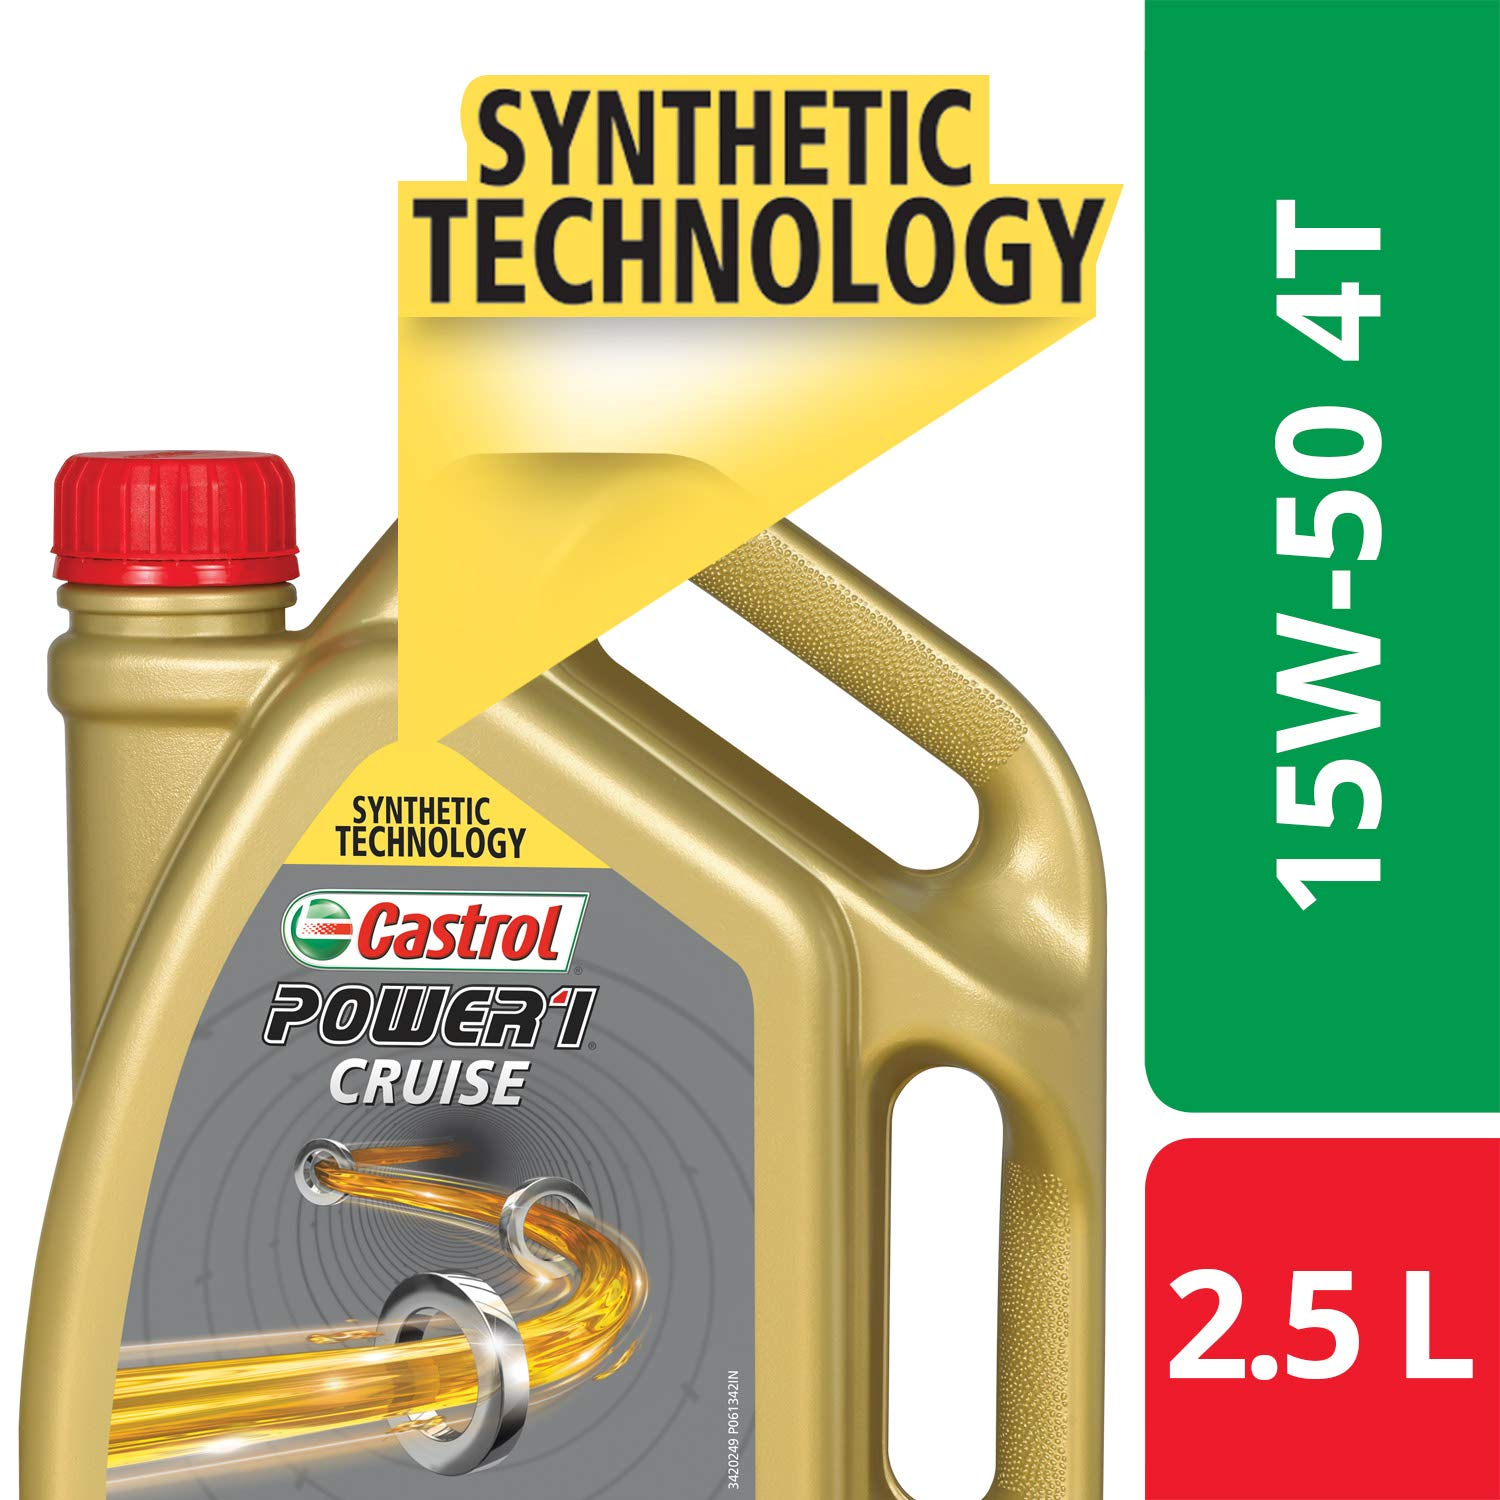 Castrol POWER1 Cruise 4T 15W-50 API SN Synthetic Engine Oil for Bikes (2.5L) product image